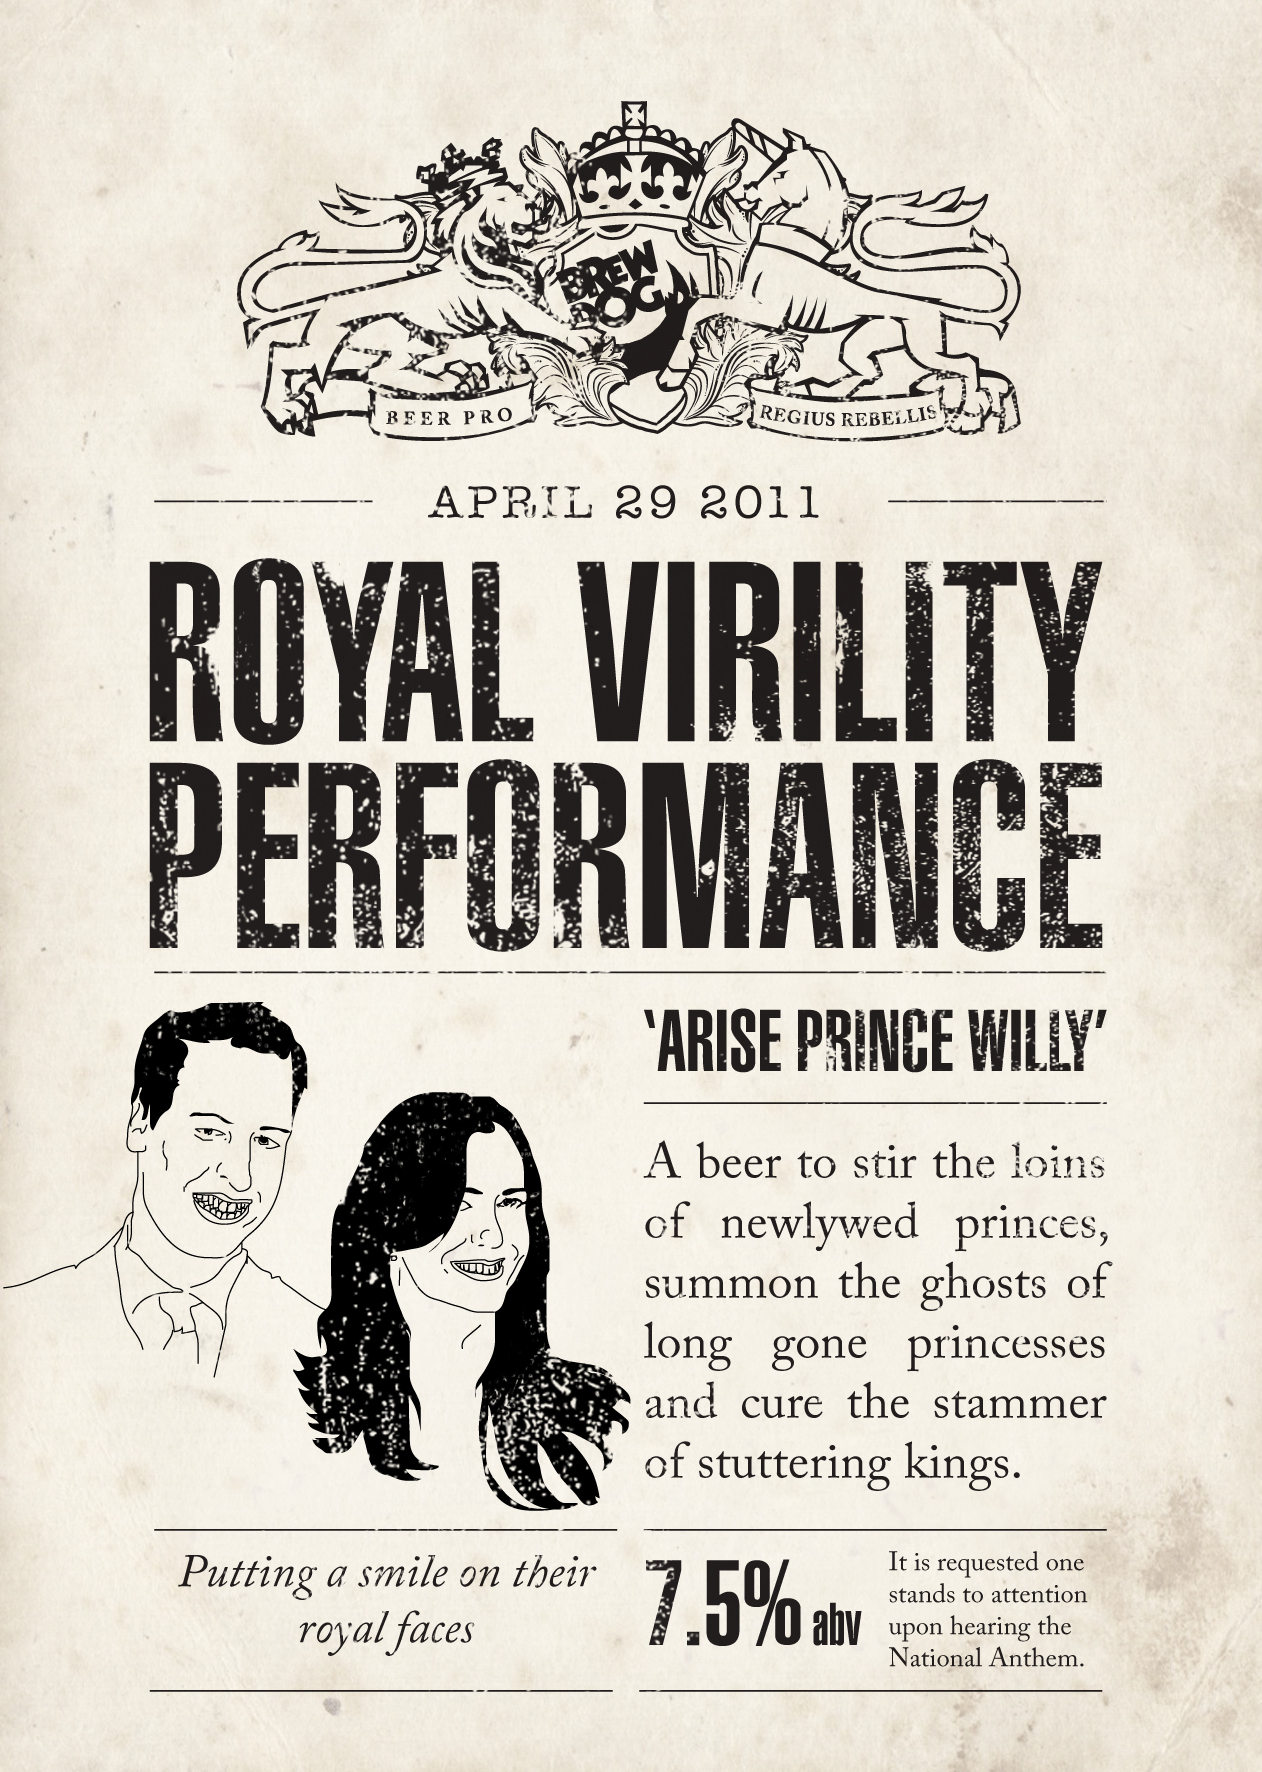 The Royal Virility Performance label